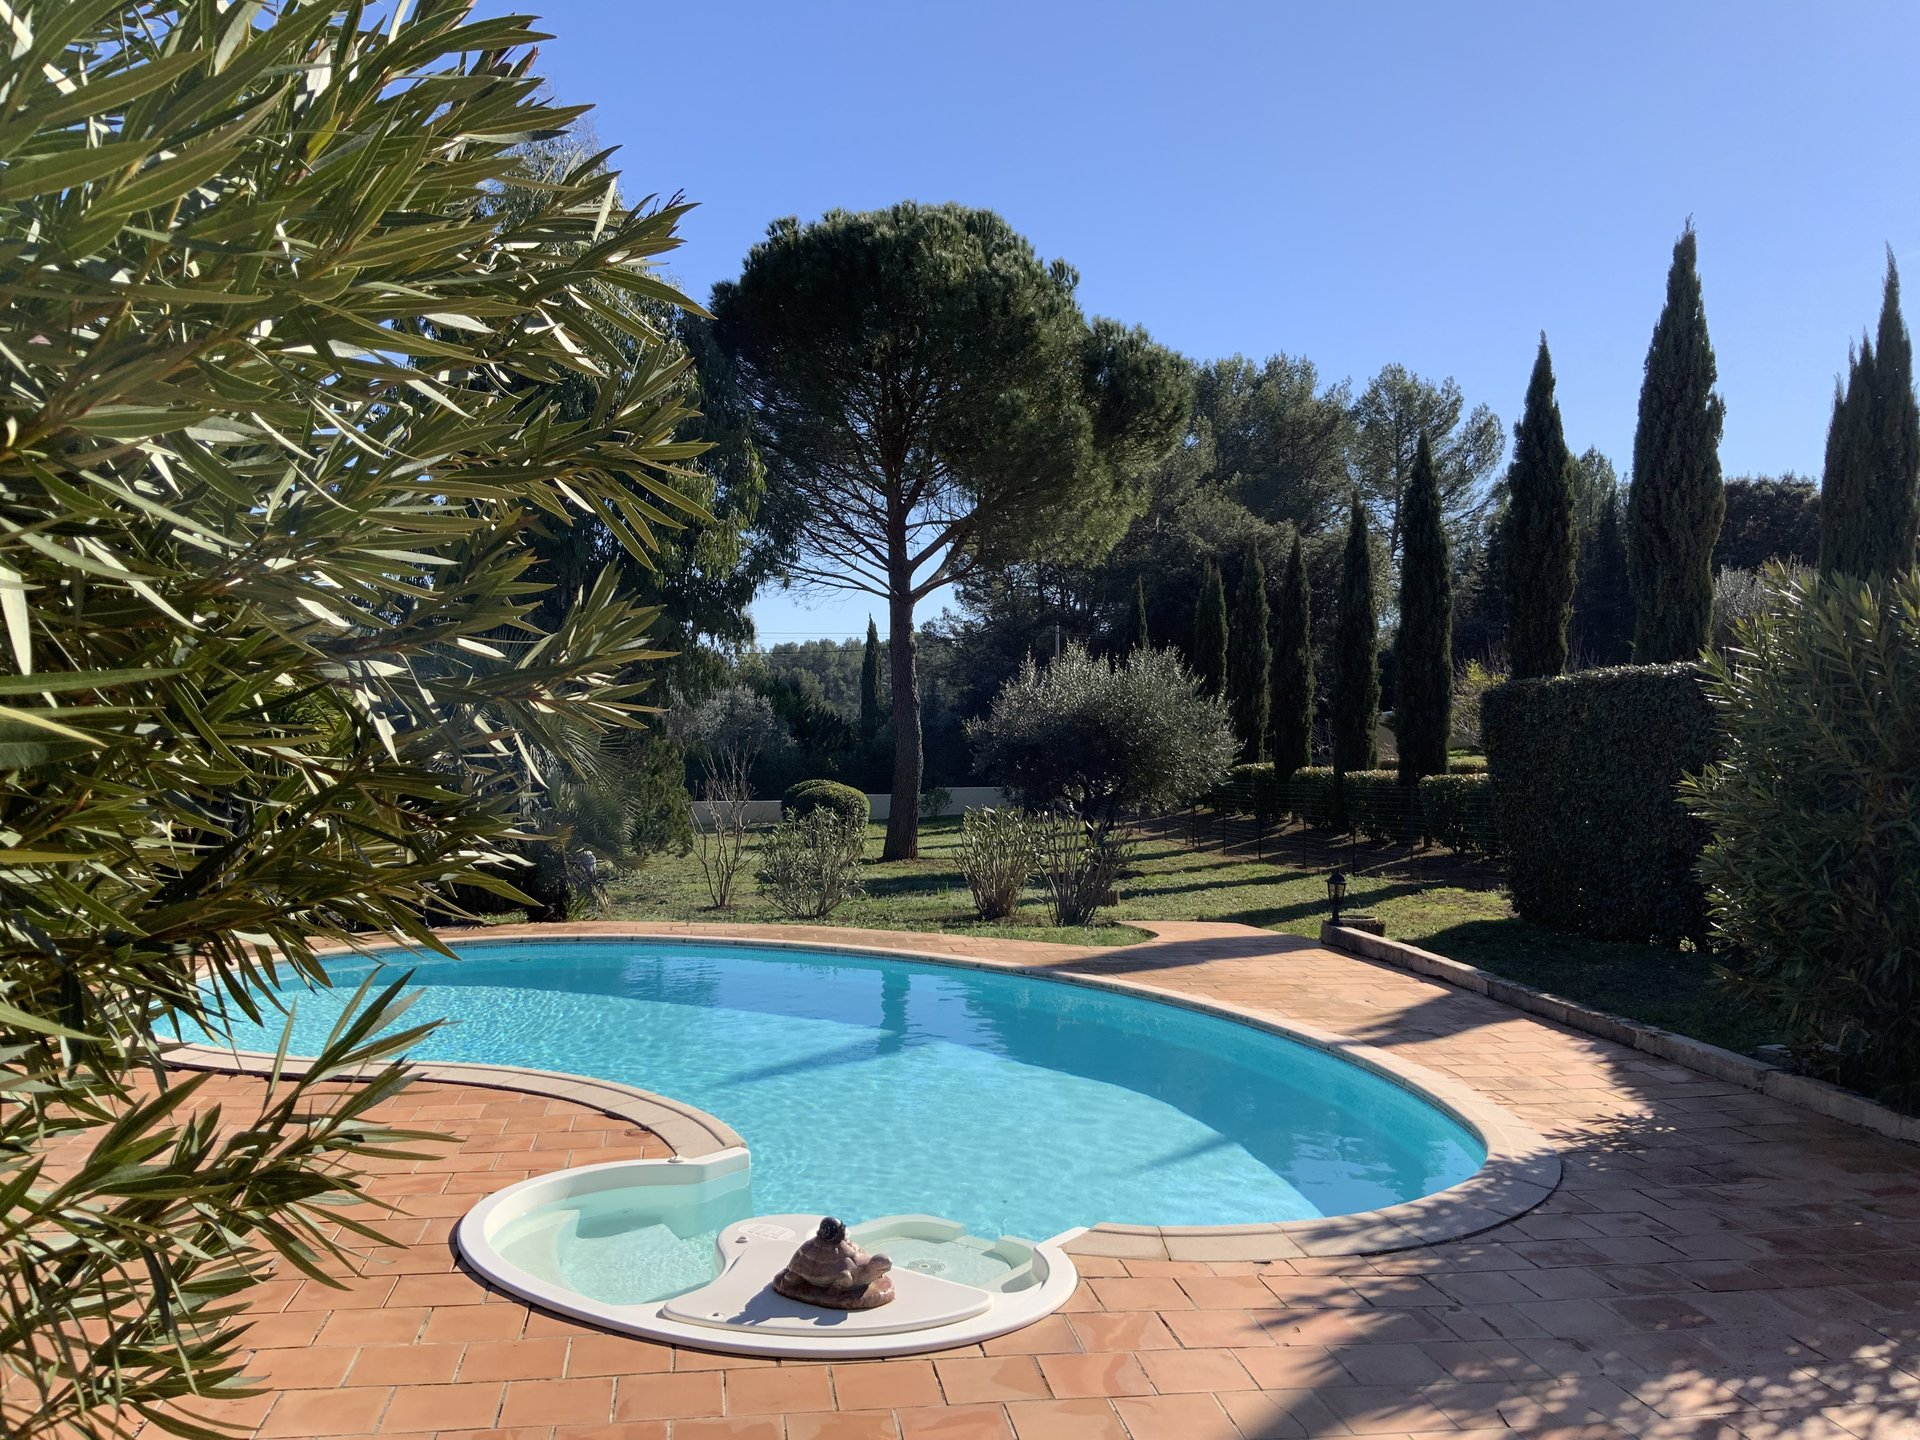 LORGUES - PROVENCAL VILLA WITH SWIMMING POOL